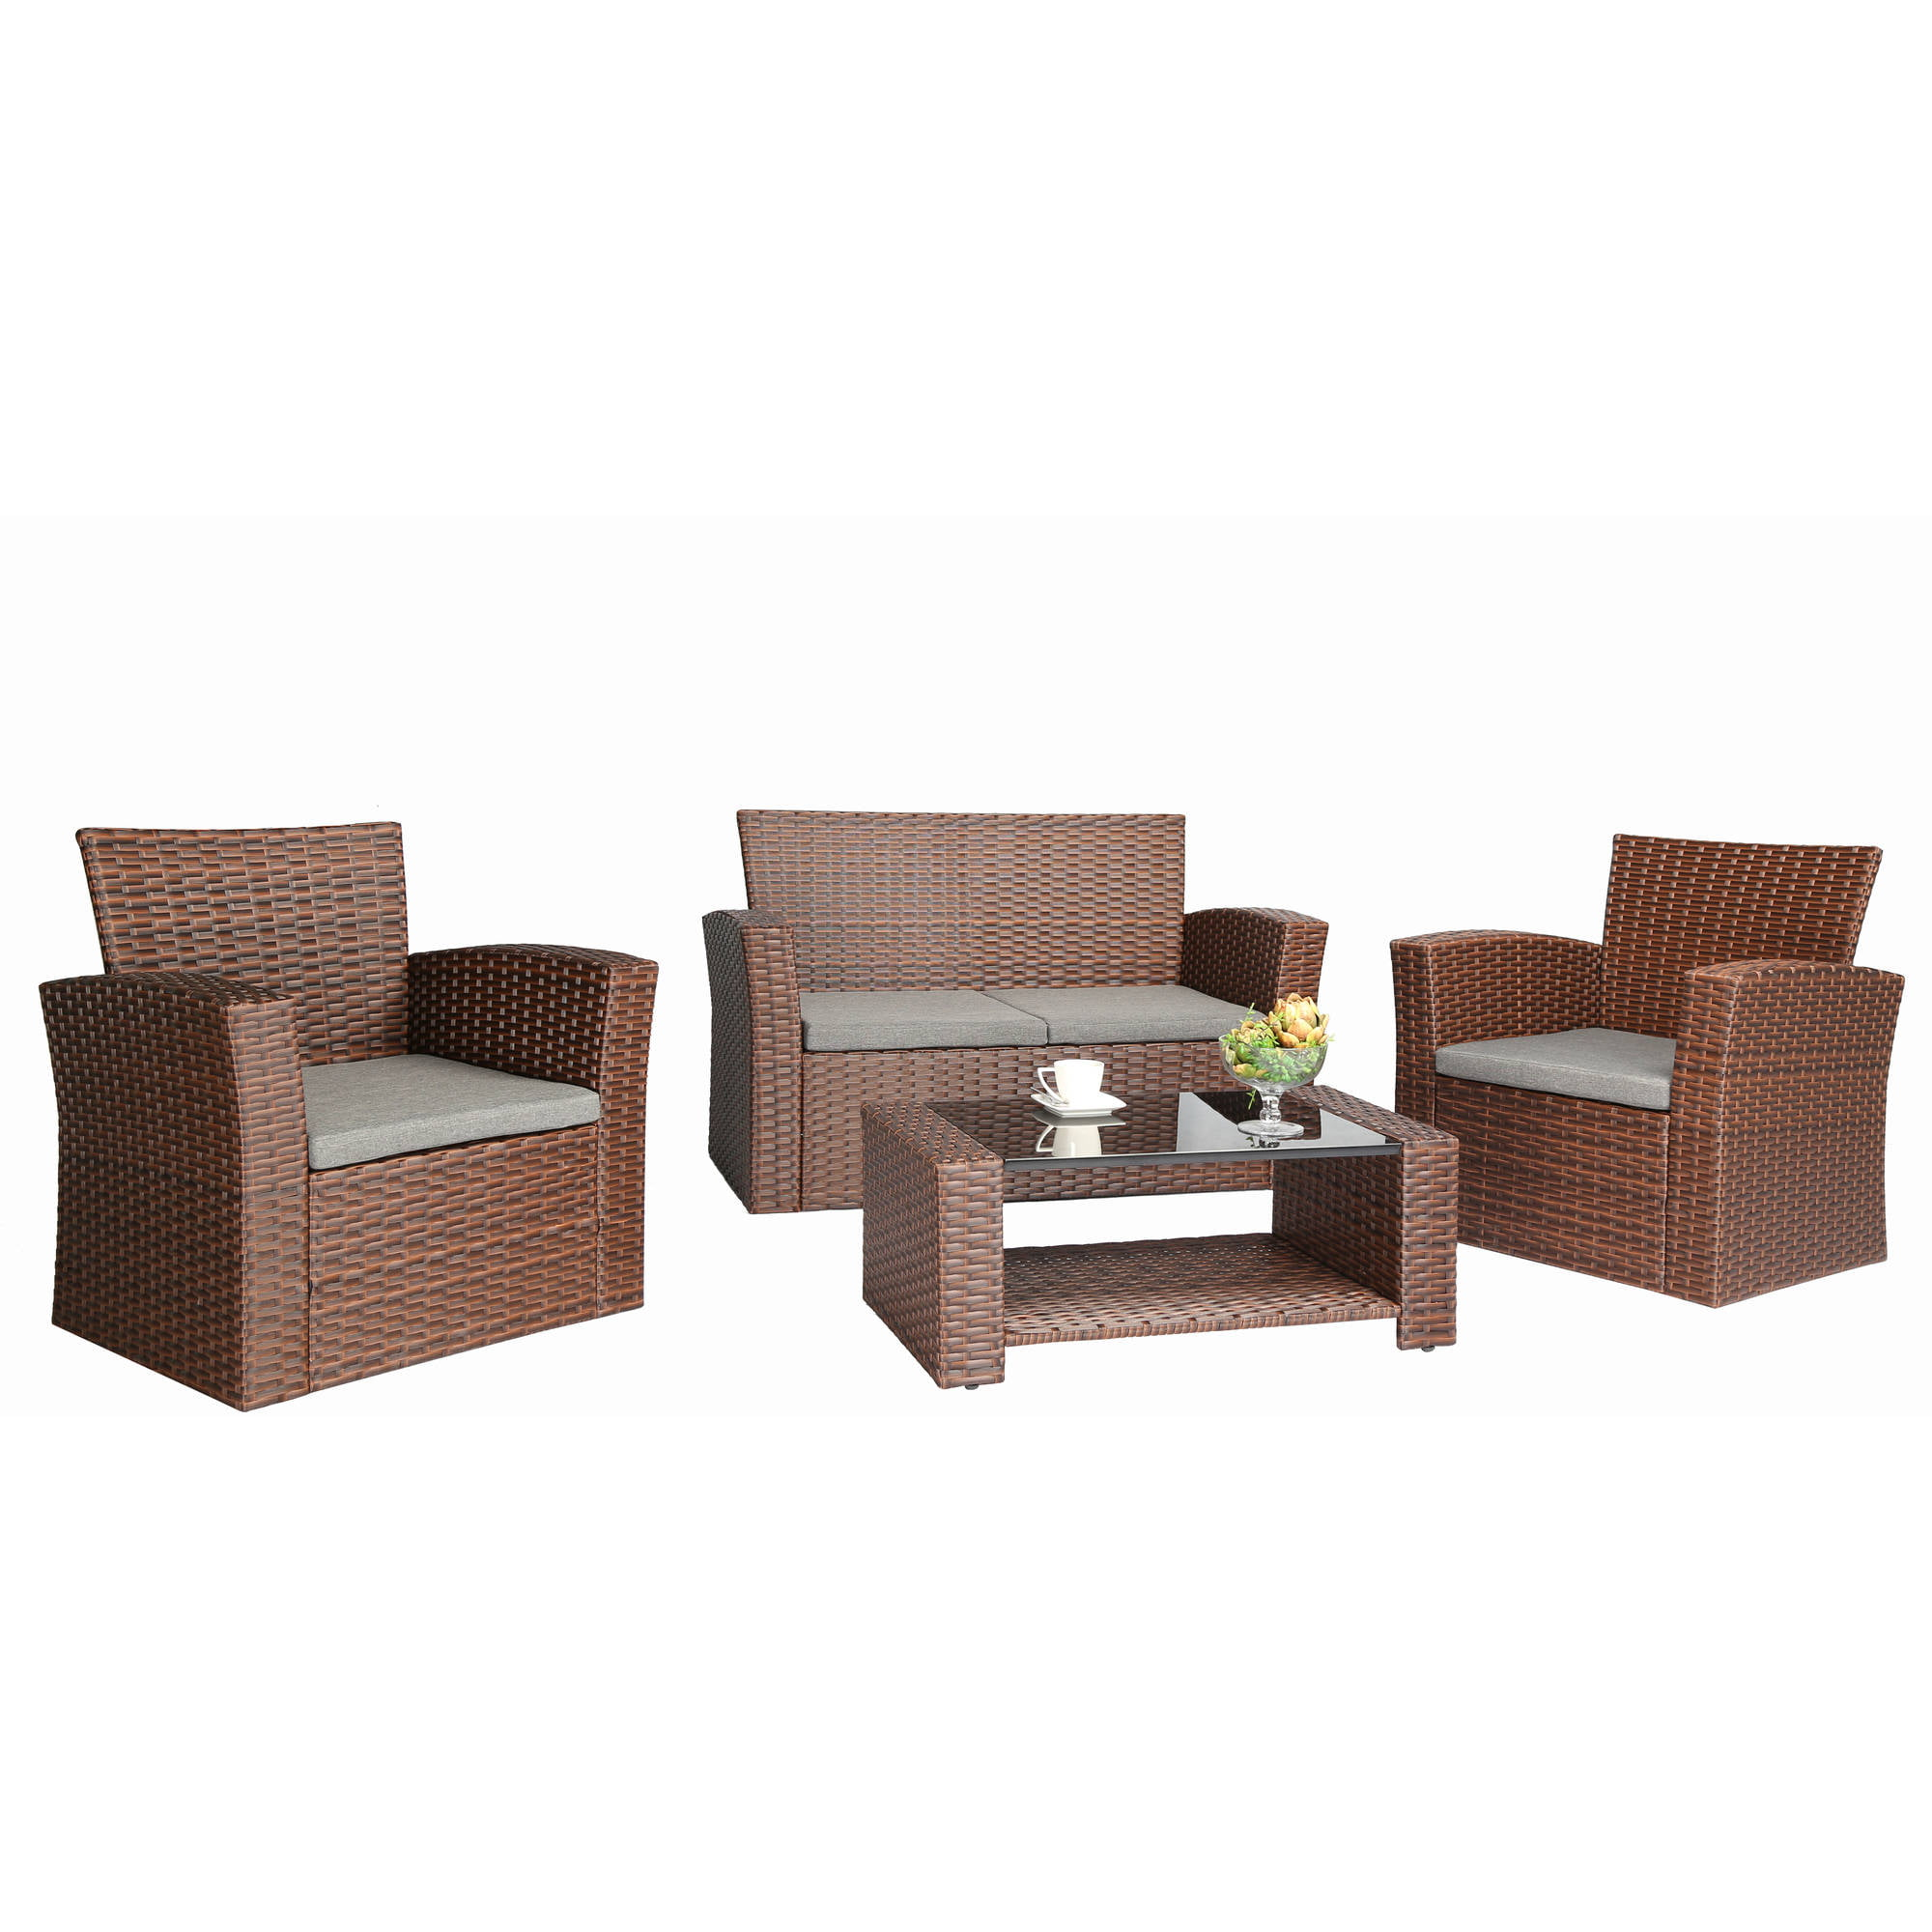 Garden Furniture Sets baner garden outdoor furniture complete patio cushion pe wicker